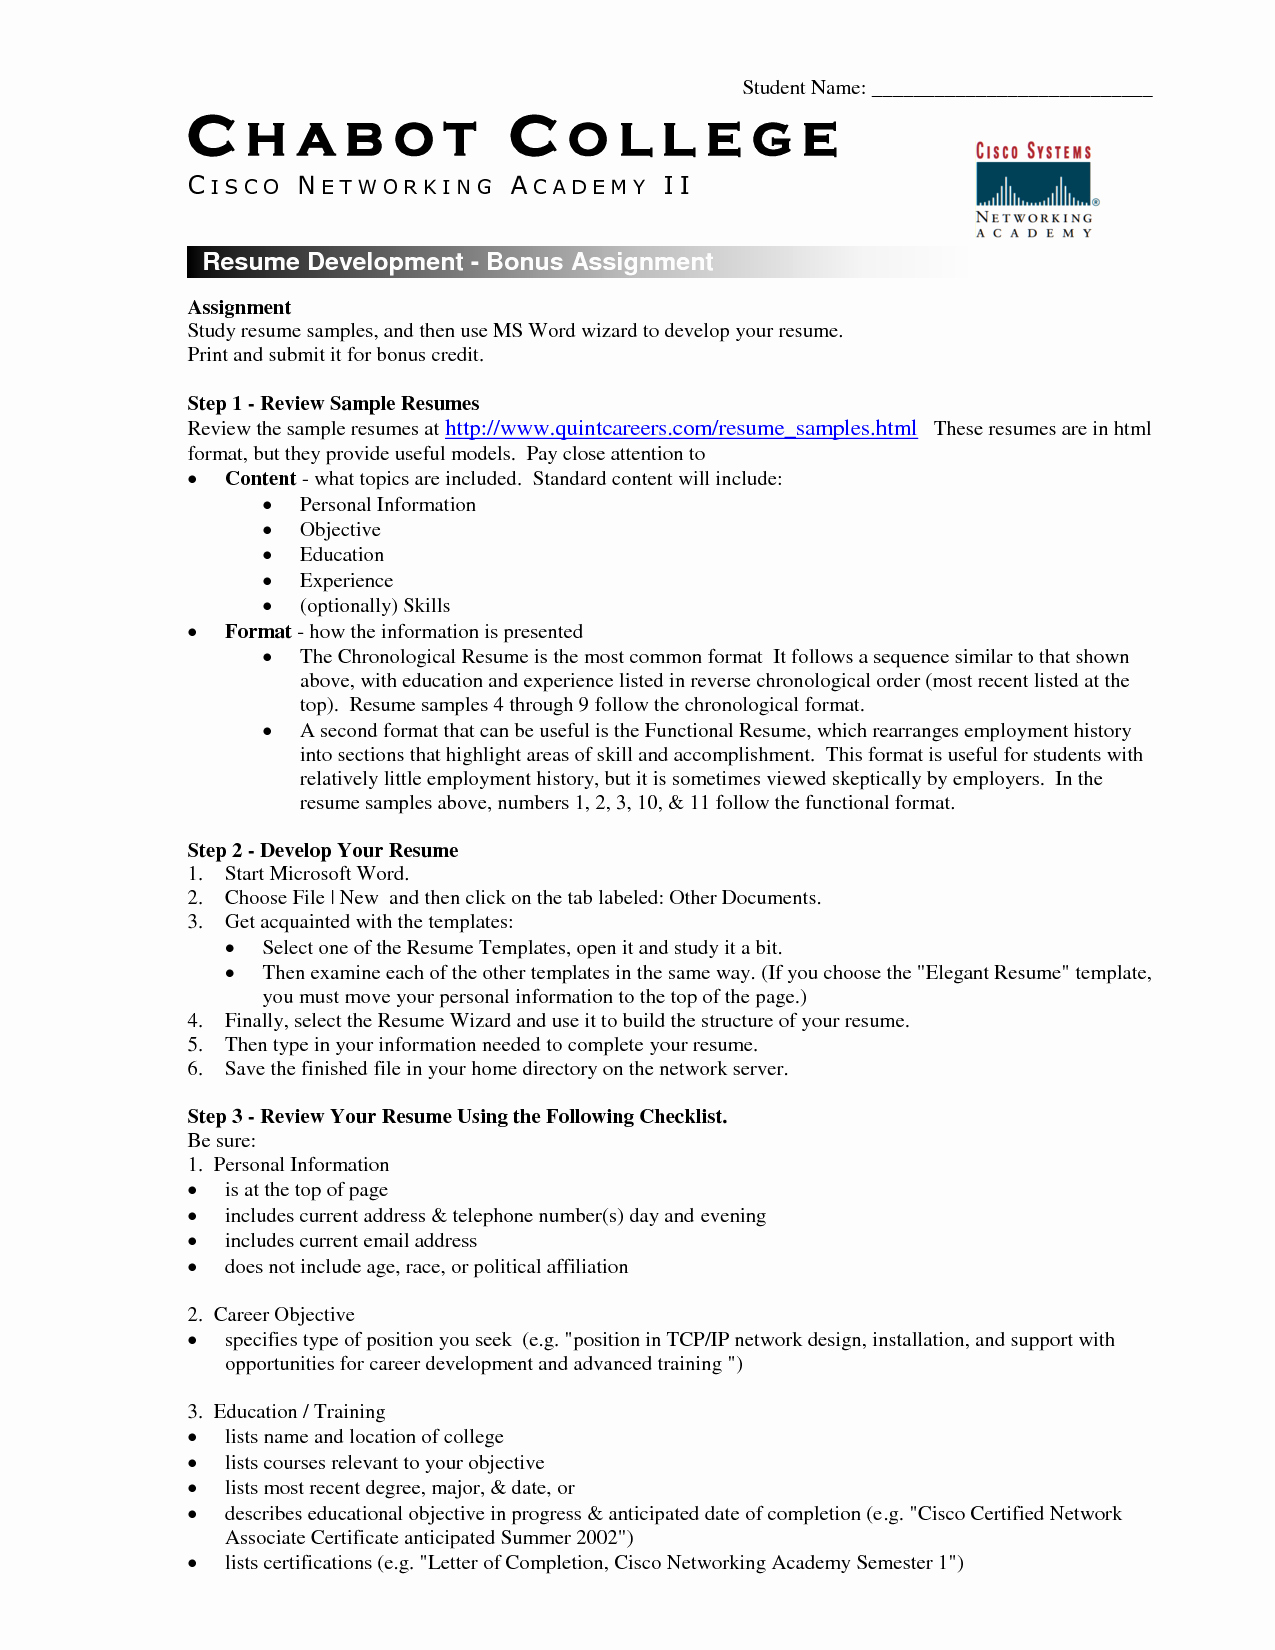 Sample Resume In Word format Best Of College Student Resume Template Microsoft Word